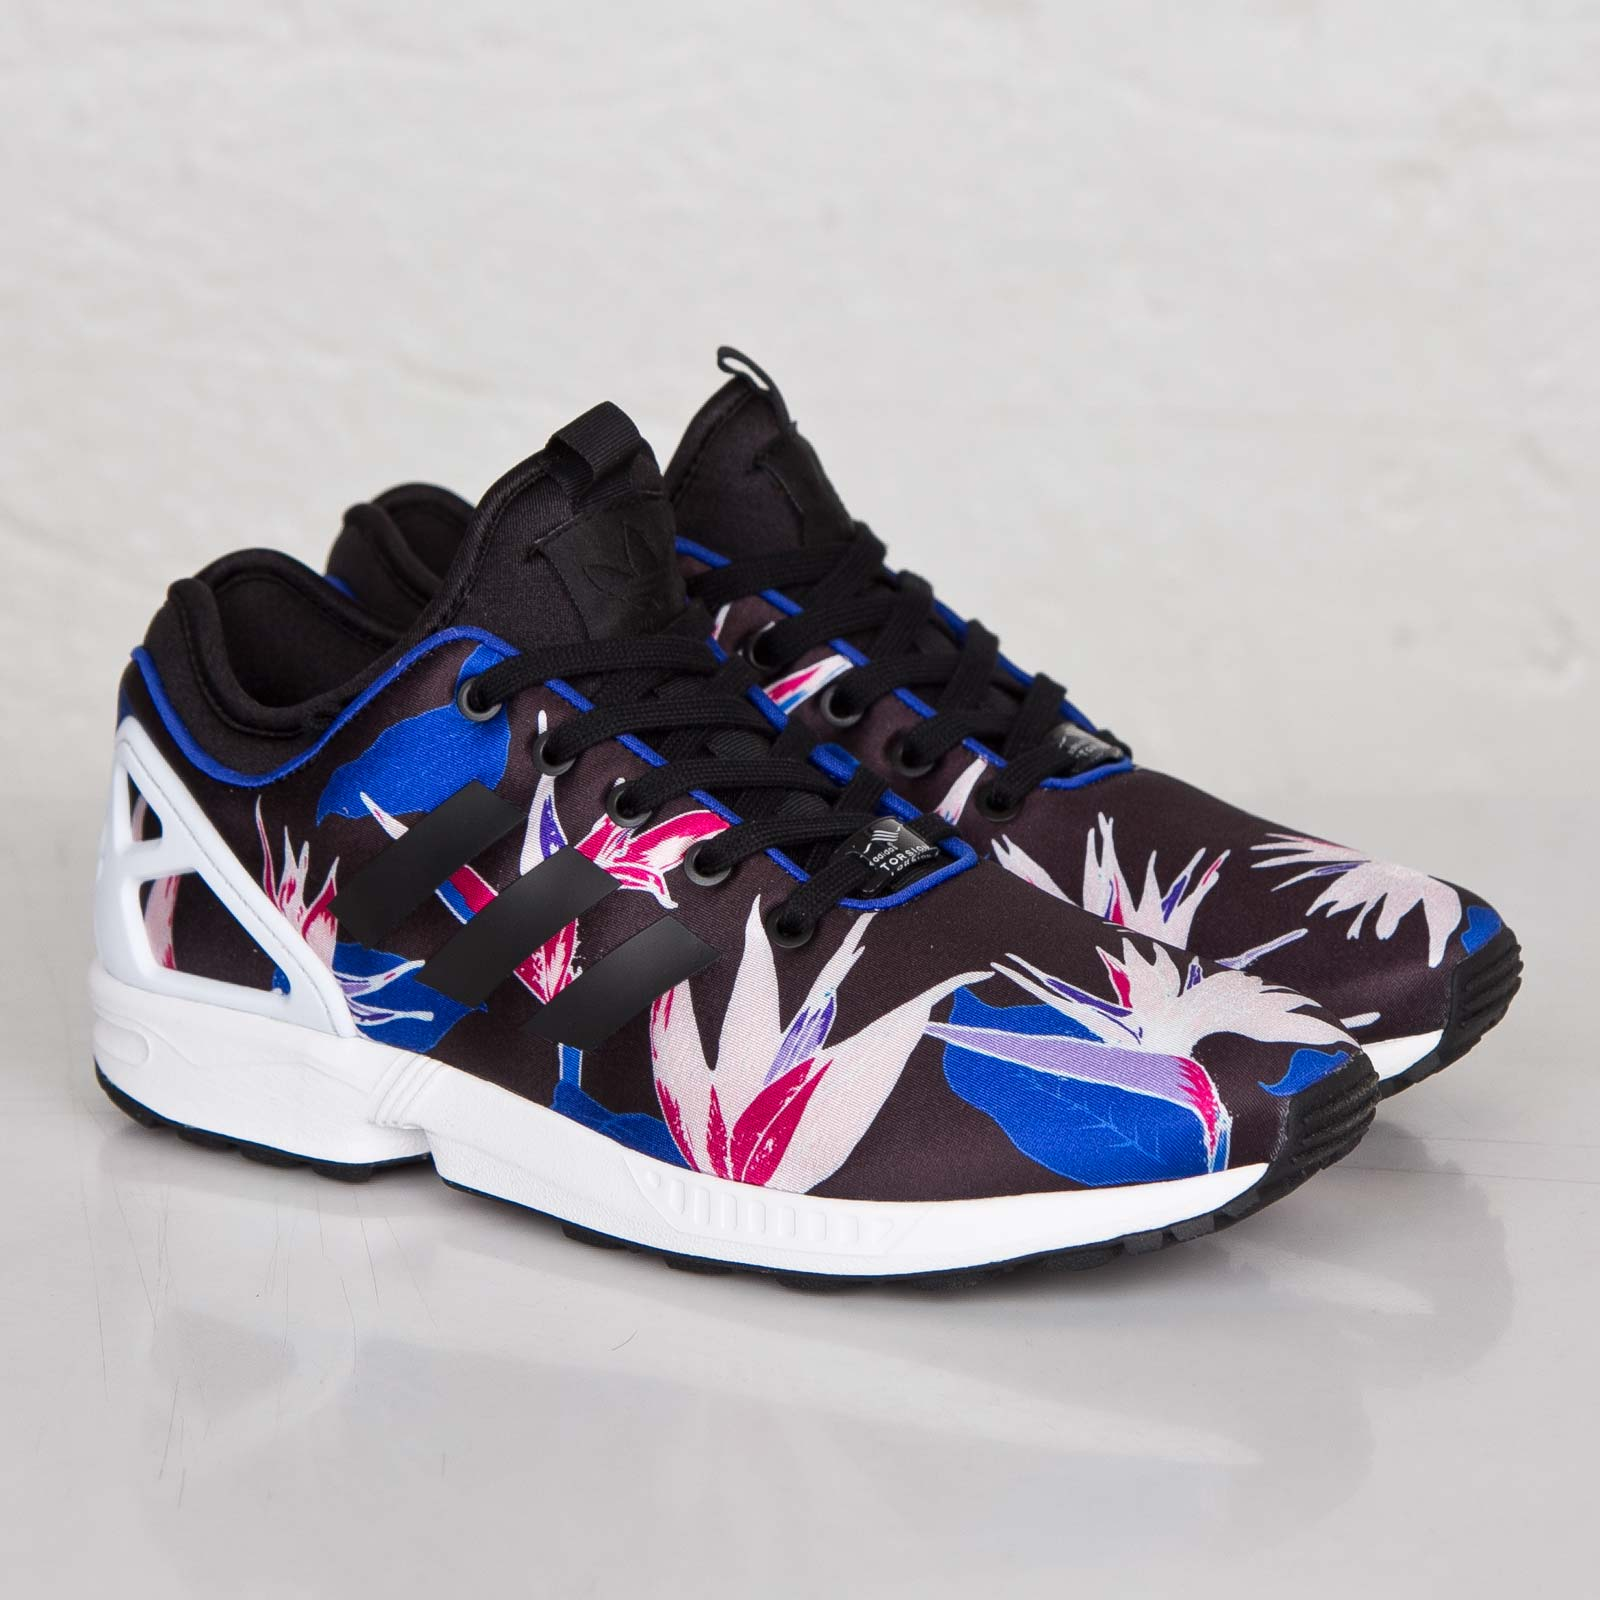 separation shoes 1aaed a2b34 adidas ZX Flux NPS - B34467 - Sneakersnstuff | sneakers ...